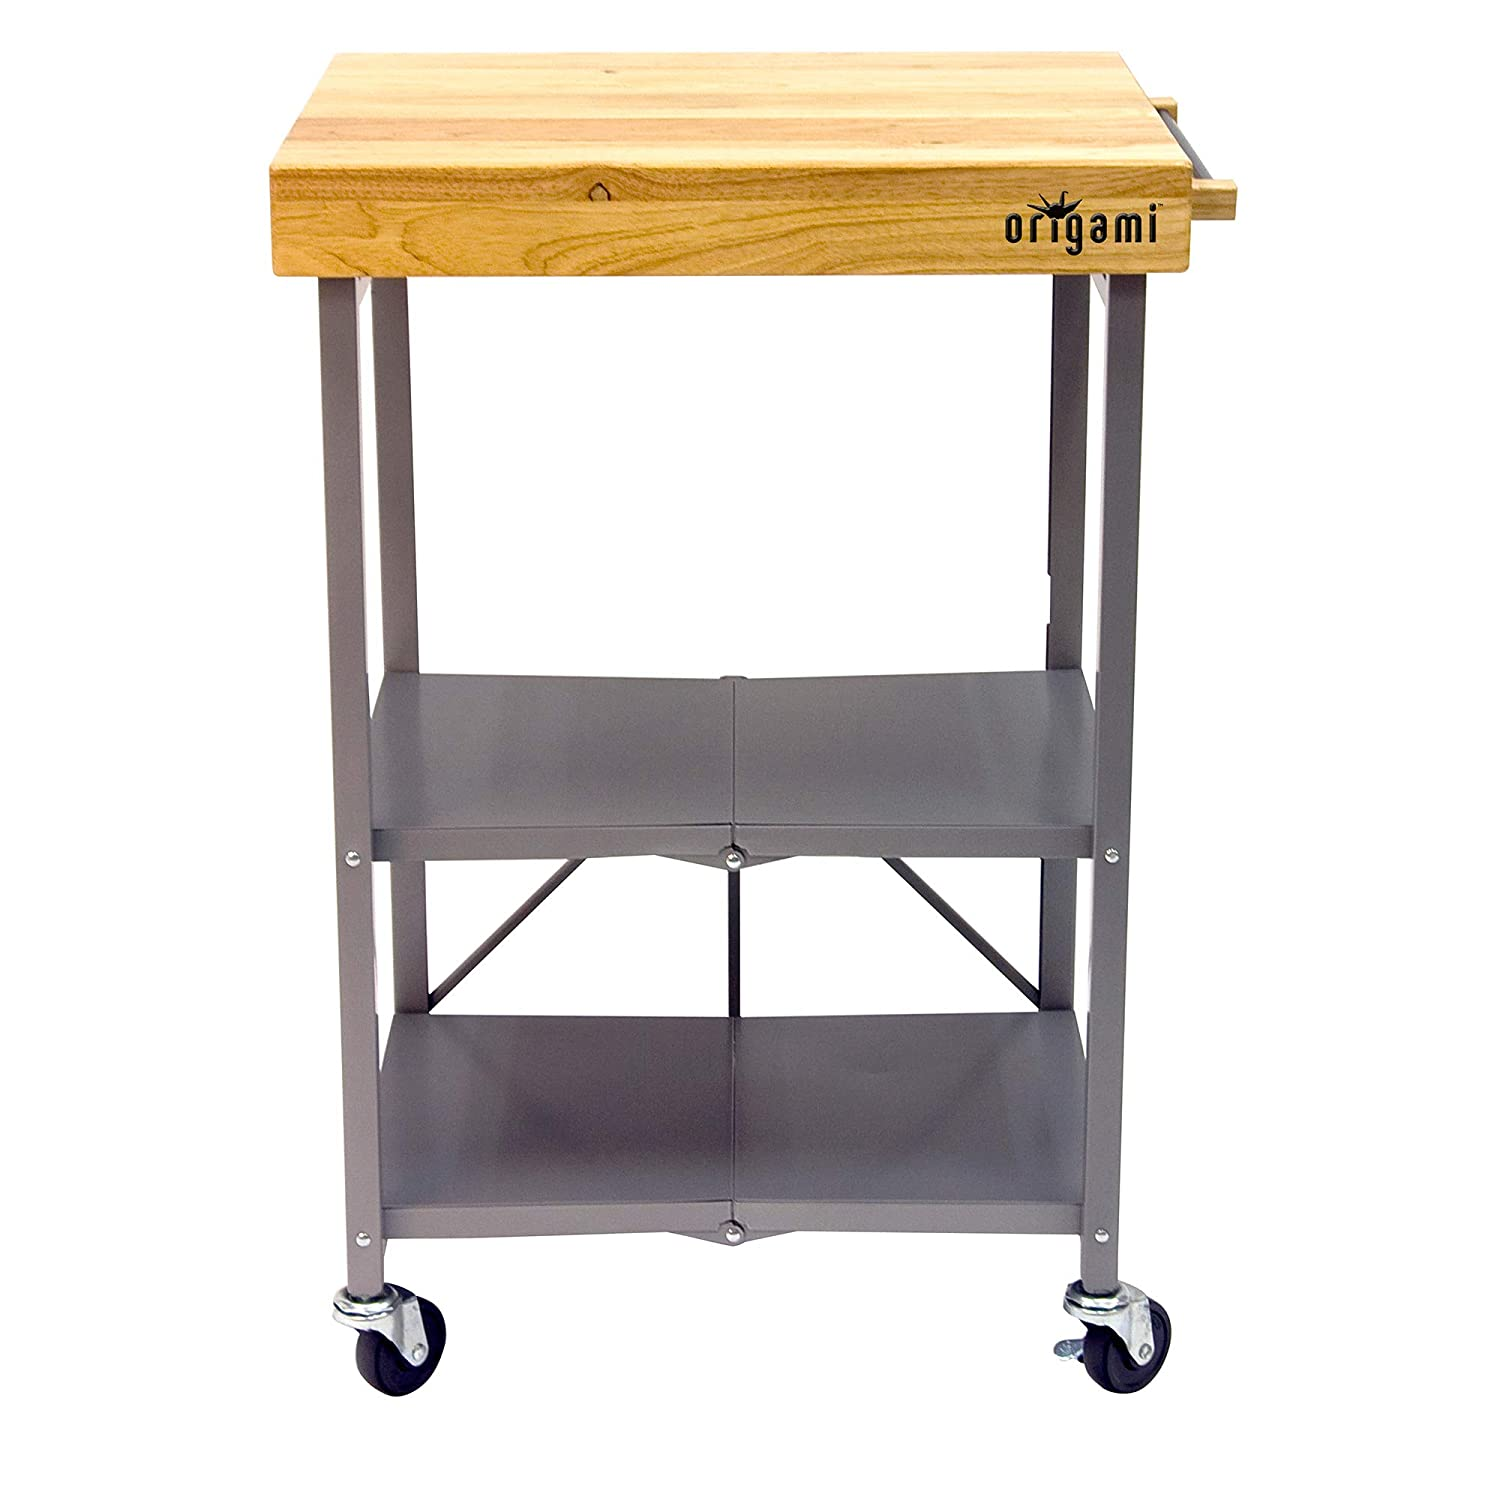 Origami Foldable Rolling Kitchen Island Cart Food Serving Cart 3 Tier Storage Shelf With Wood Top Microwave Stand Heavy Duty Silver